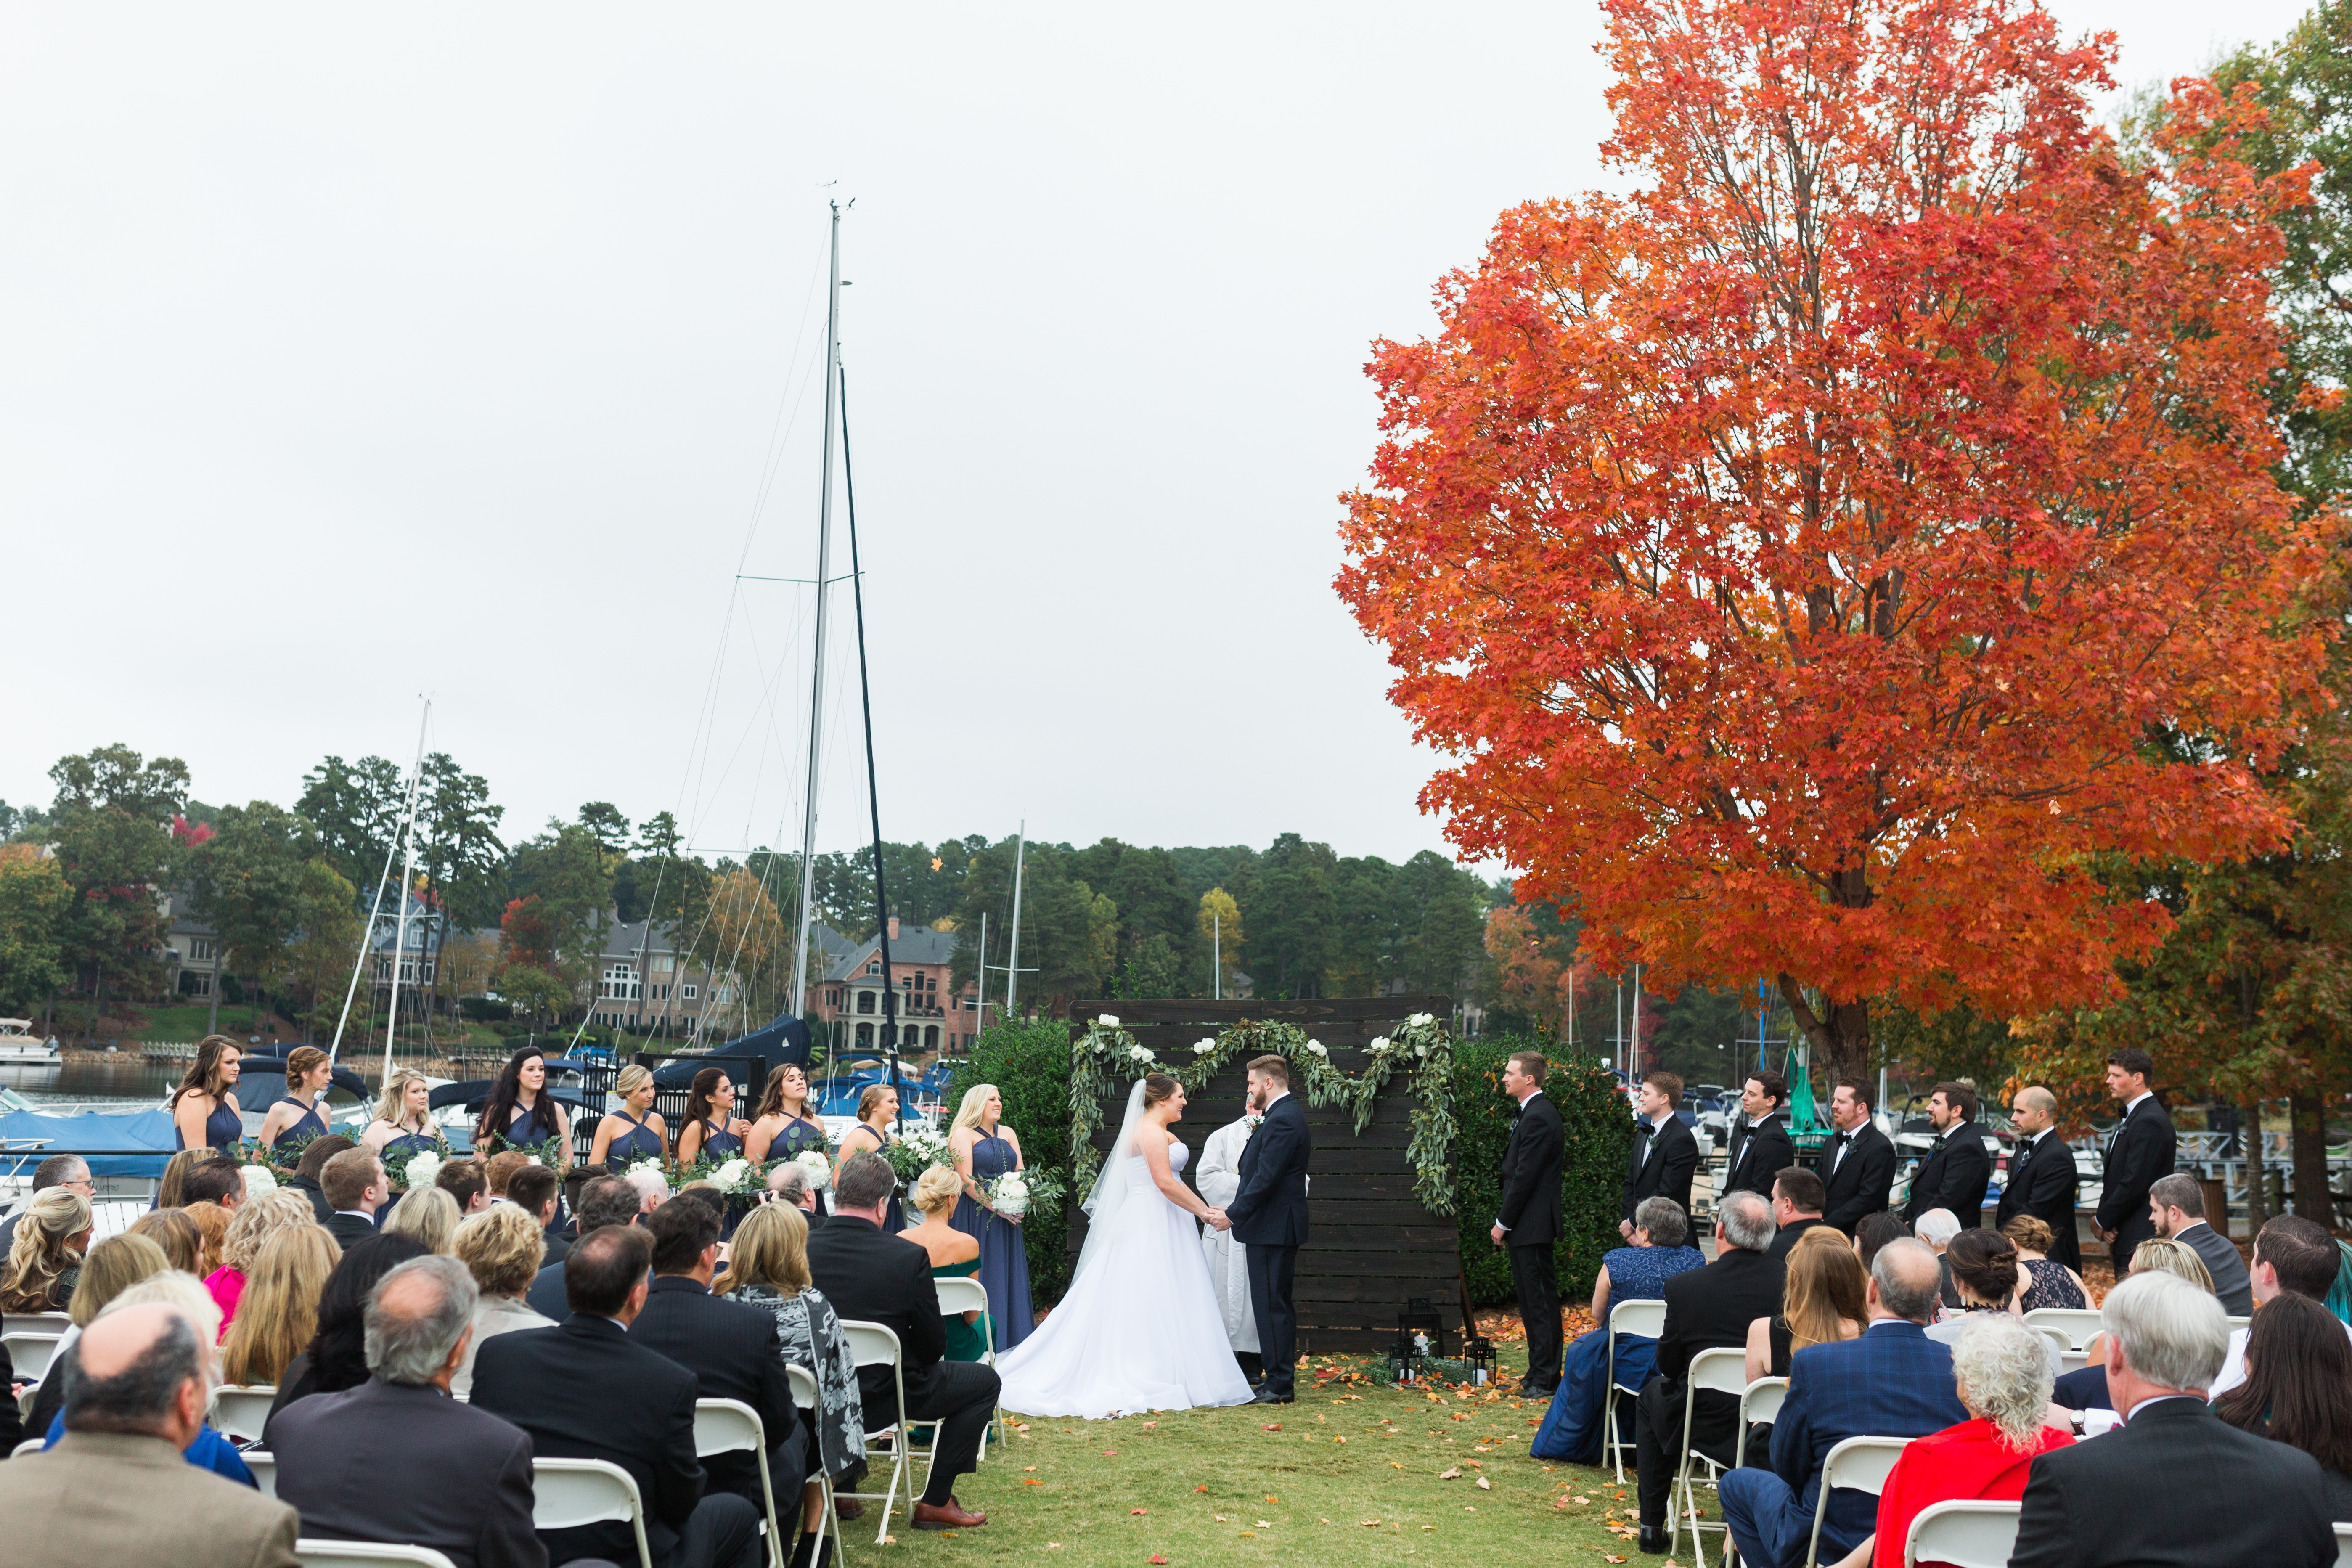 Outdoor fall ceremony captured by Samantha Laffoon Photography at the Peninsula Yacht Club